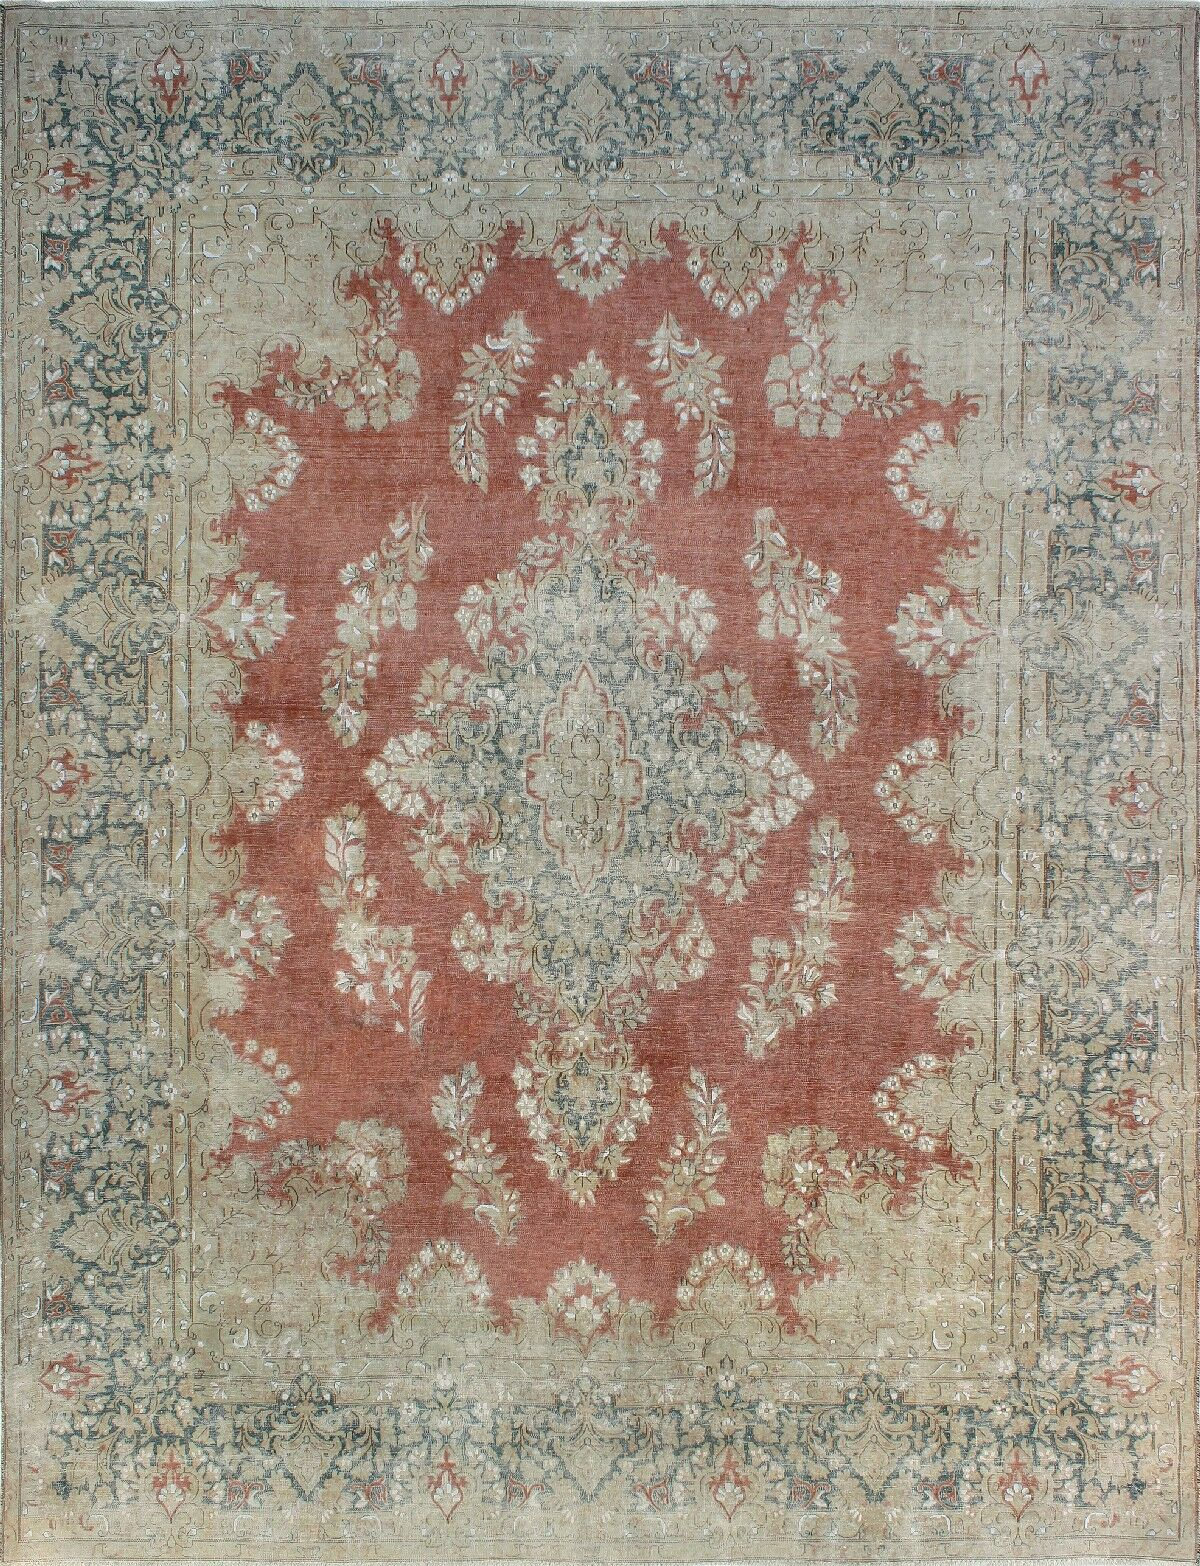 One-of-a-Kind Millner Distressed Valeria Hand-Knotted Wool Gray/Red Are Rug